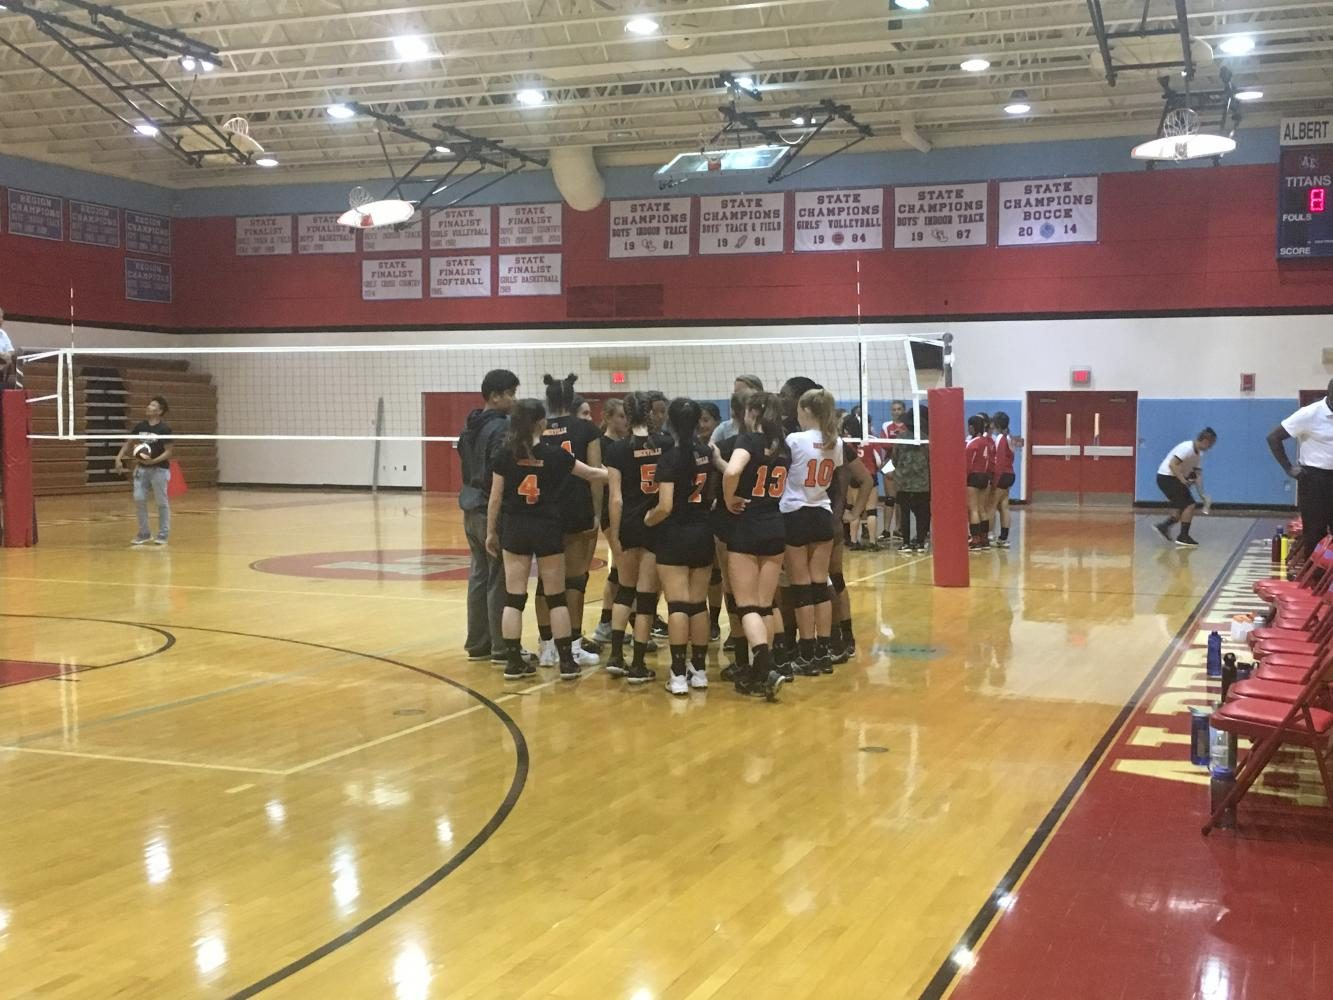 Rams+huddle+during+a+timeout+against++the+Albert+Einstein+Titans+whom+they+beat+in+straight+sets+for+their+first+win+of+the+season.+